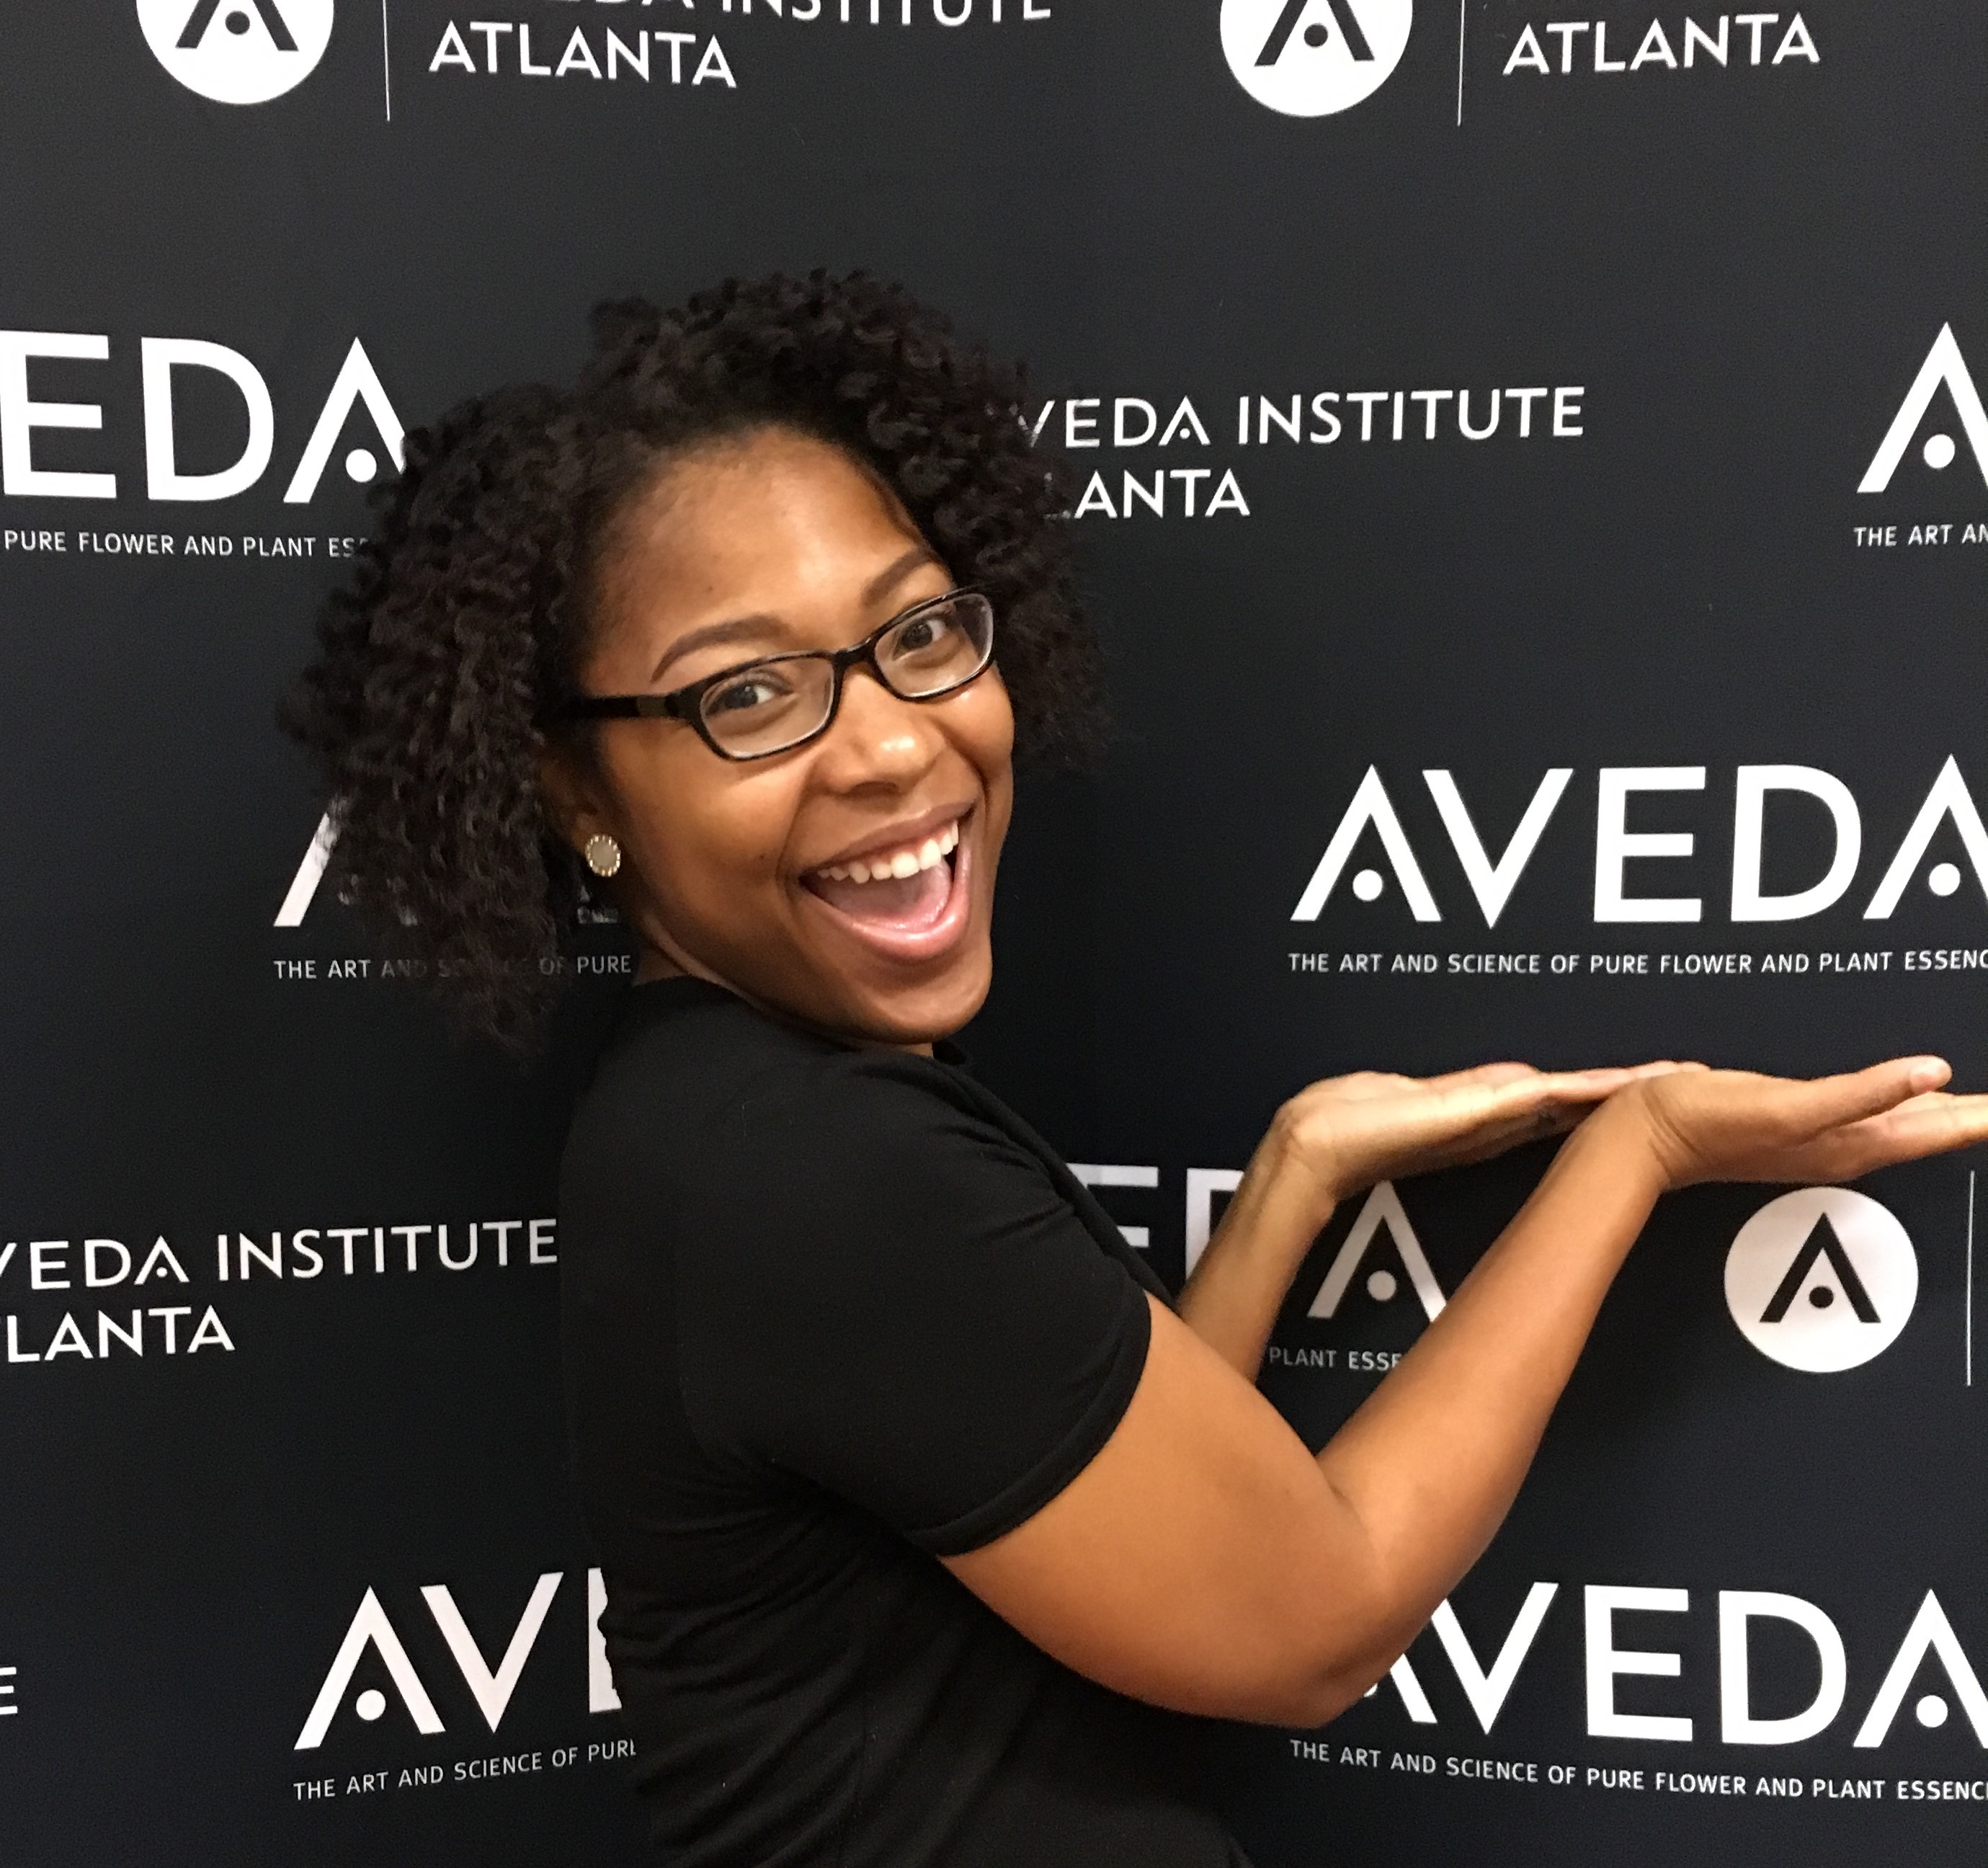 Image of Aveda Student of the Month